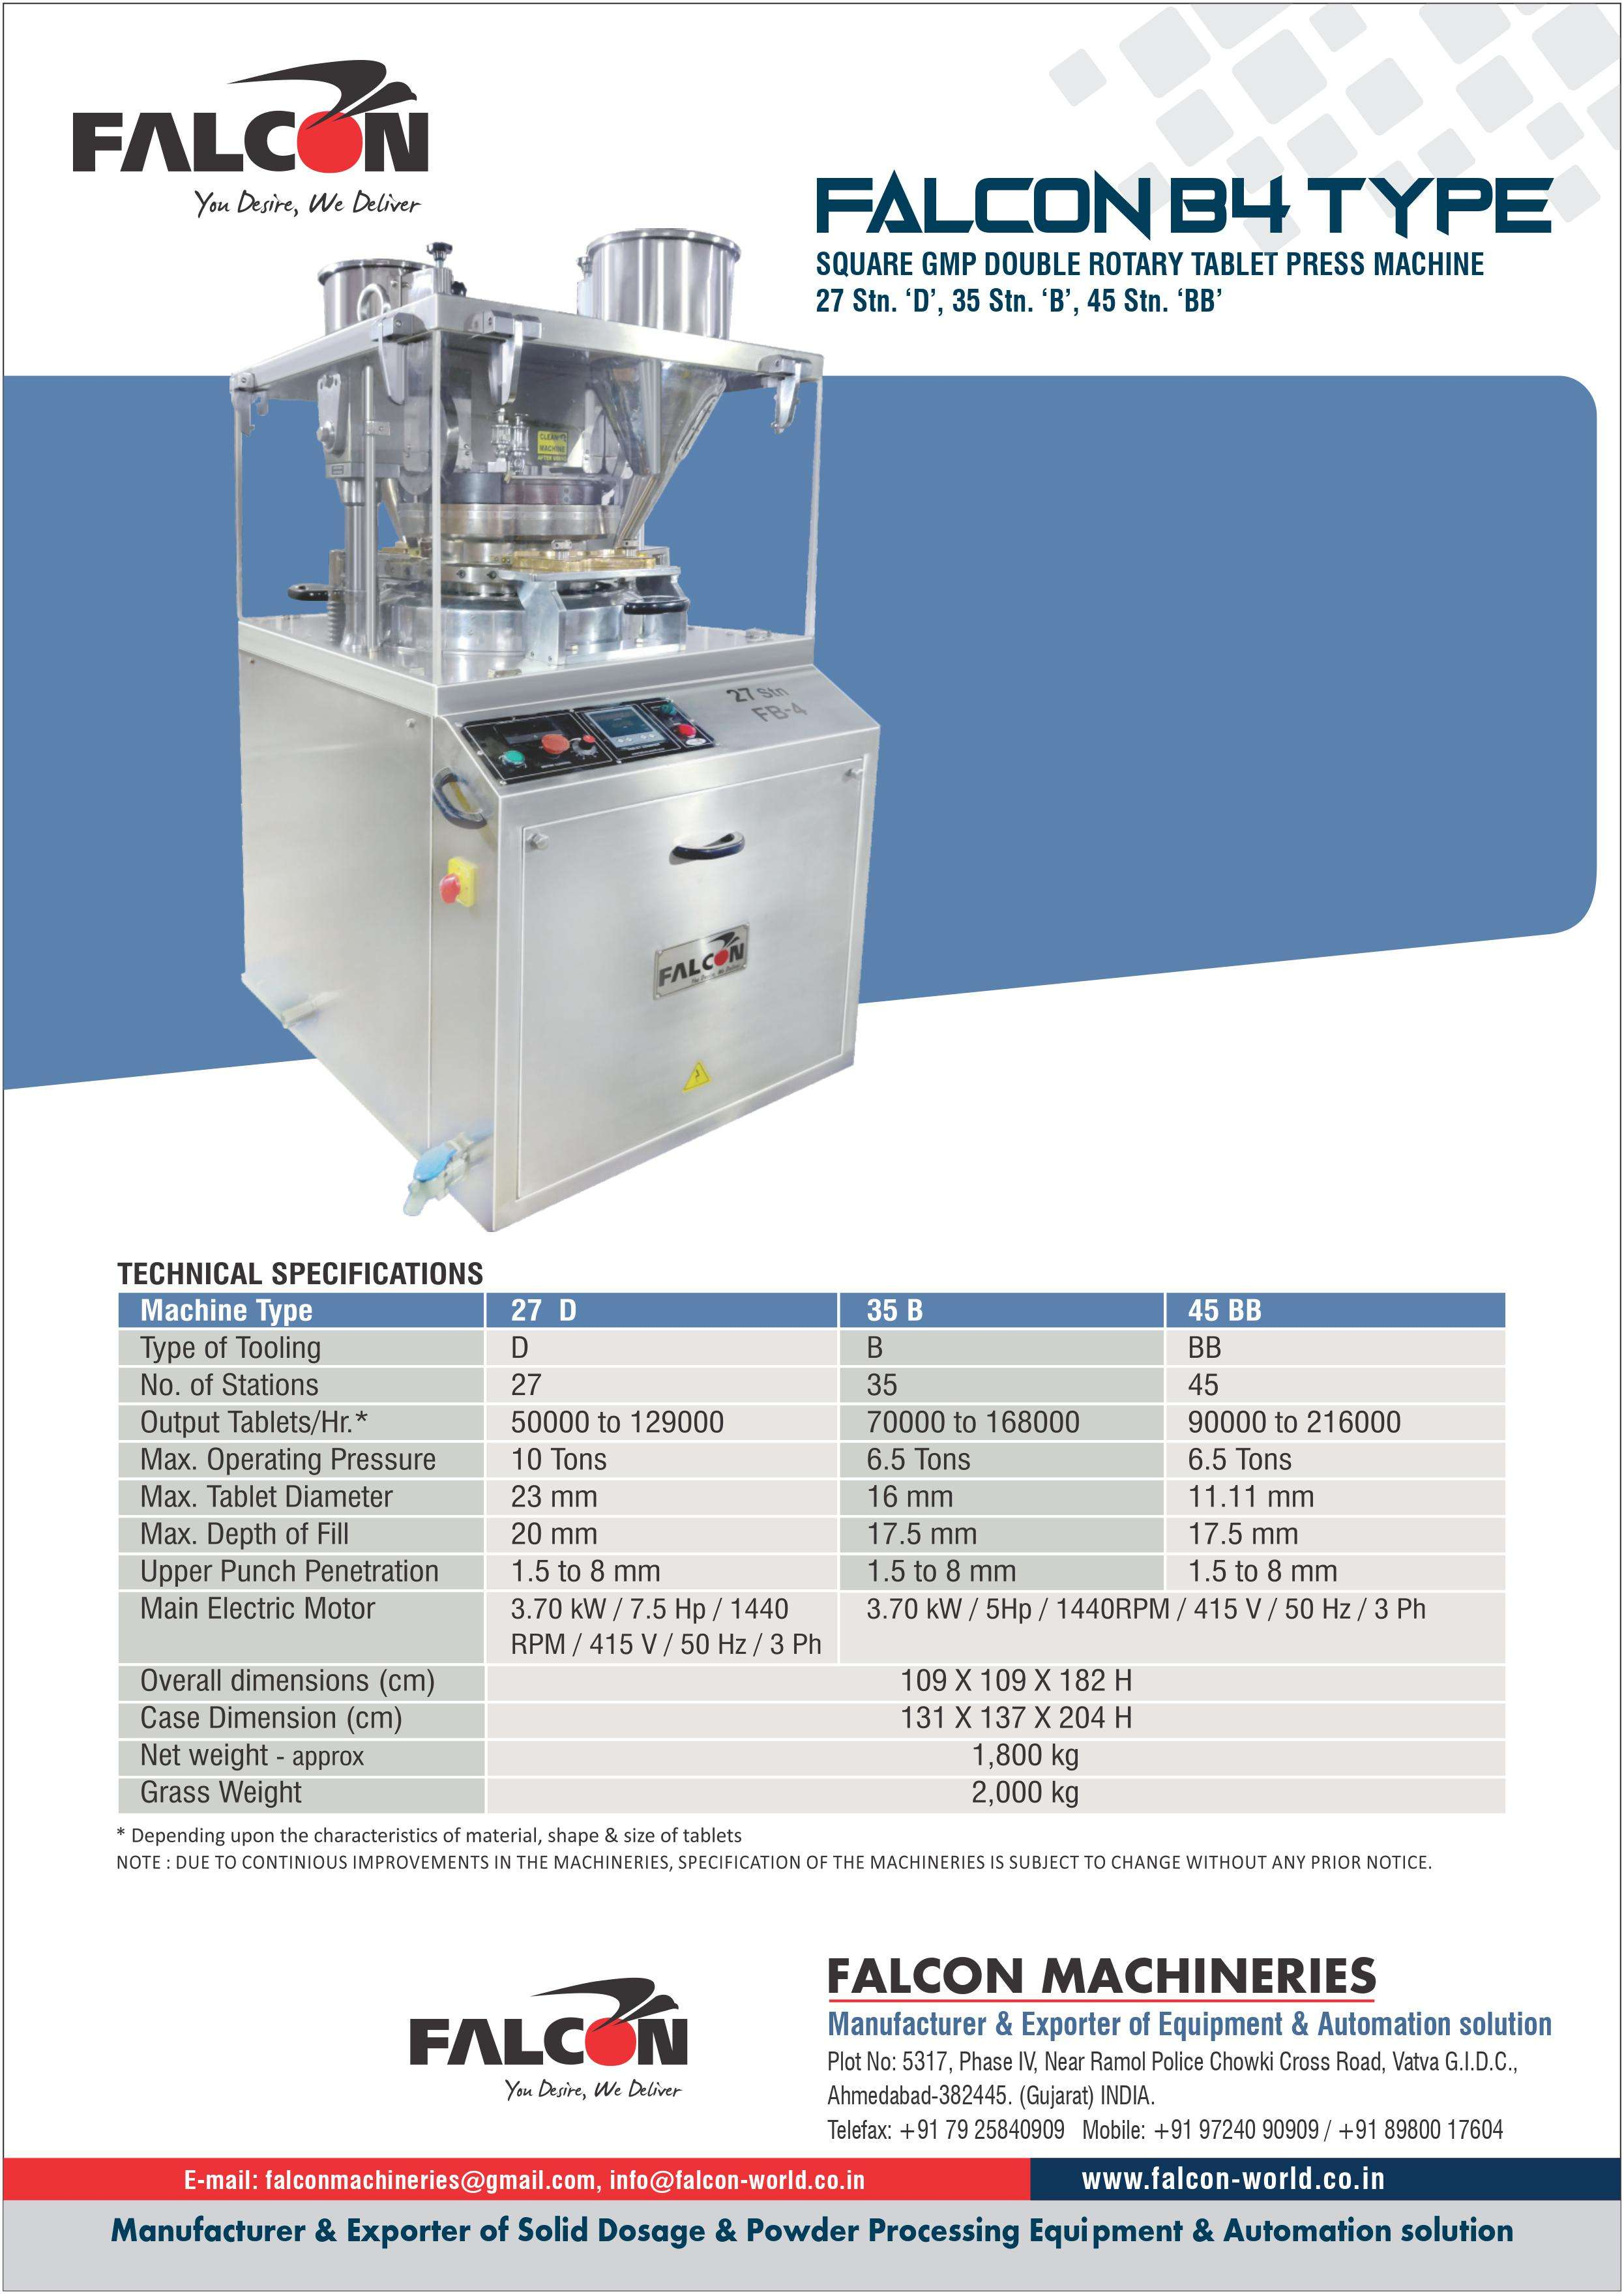 FALCON B4 TYPE DOUBLE ROTARY TABLET PRESS